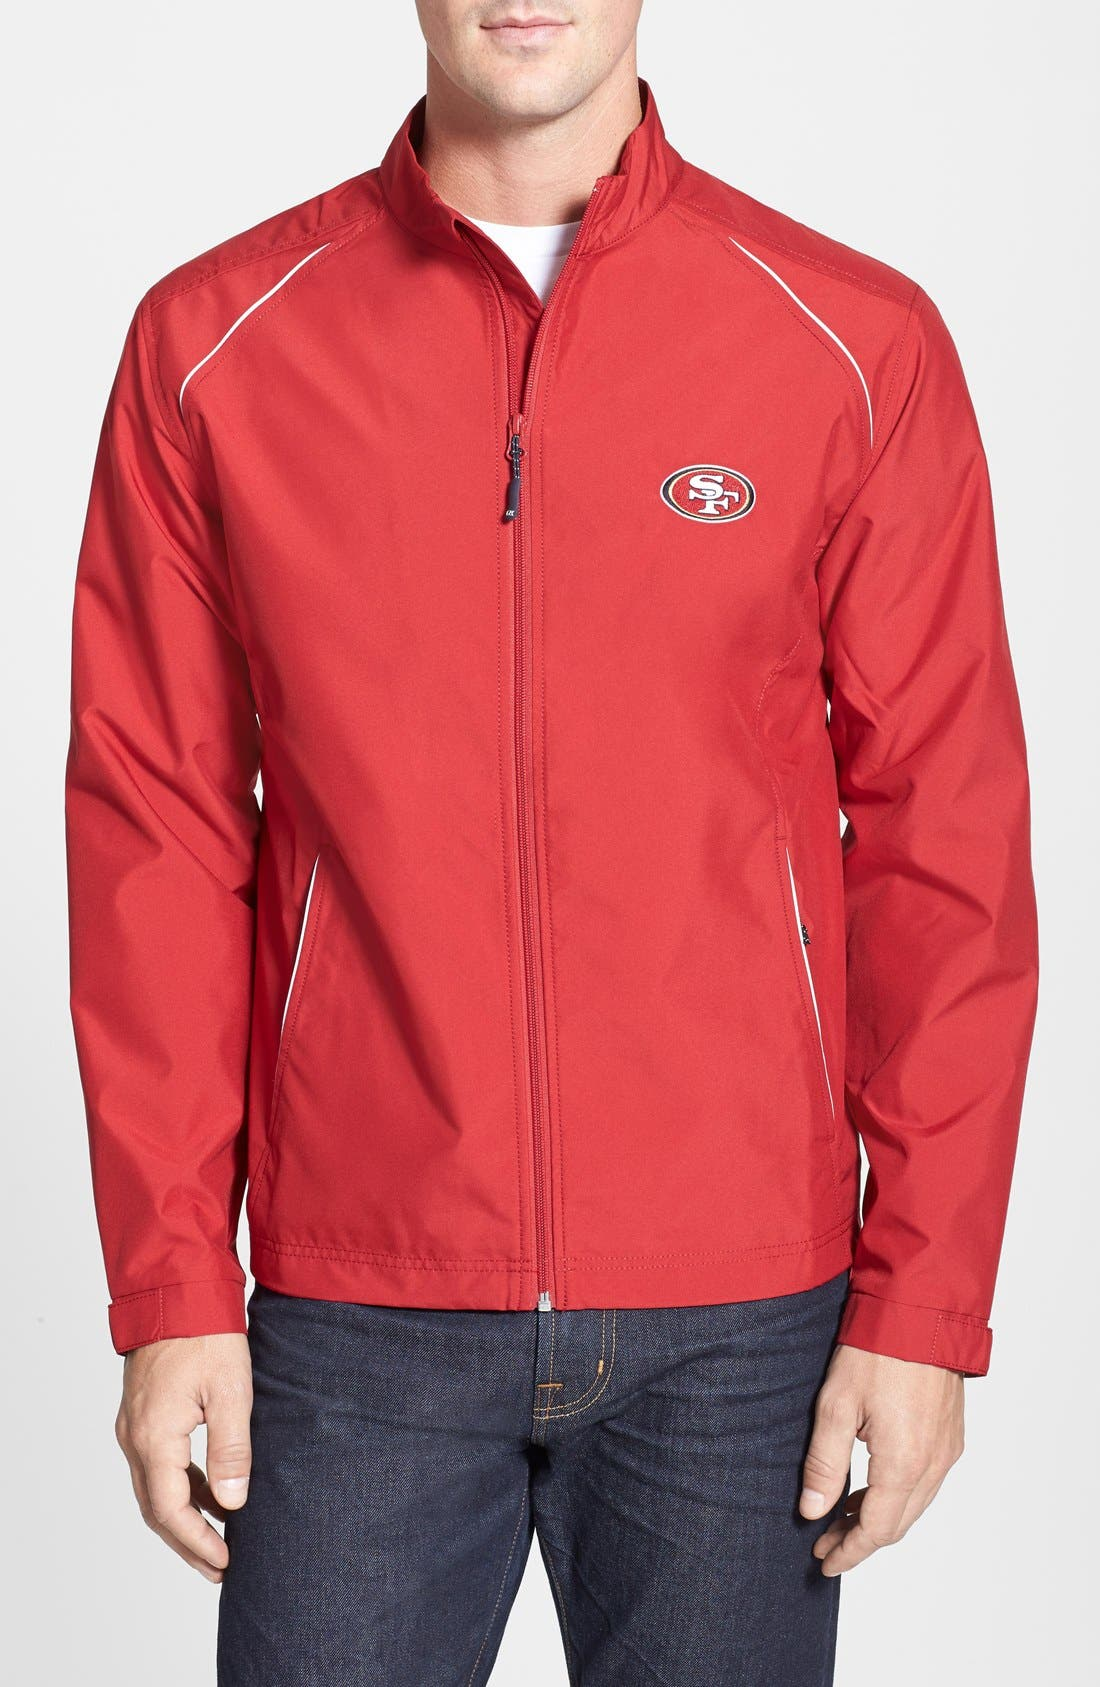 Alternate Image 1 Selected - Cutter & Buck San Francisco 49ers - Beacon WeatherTec Wind & Water Resistant Jacket